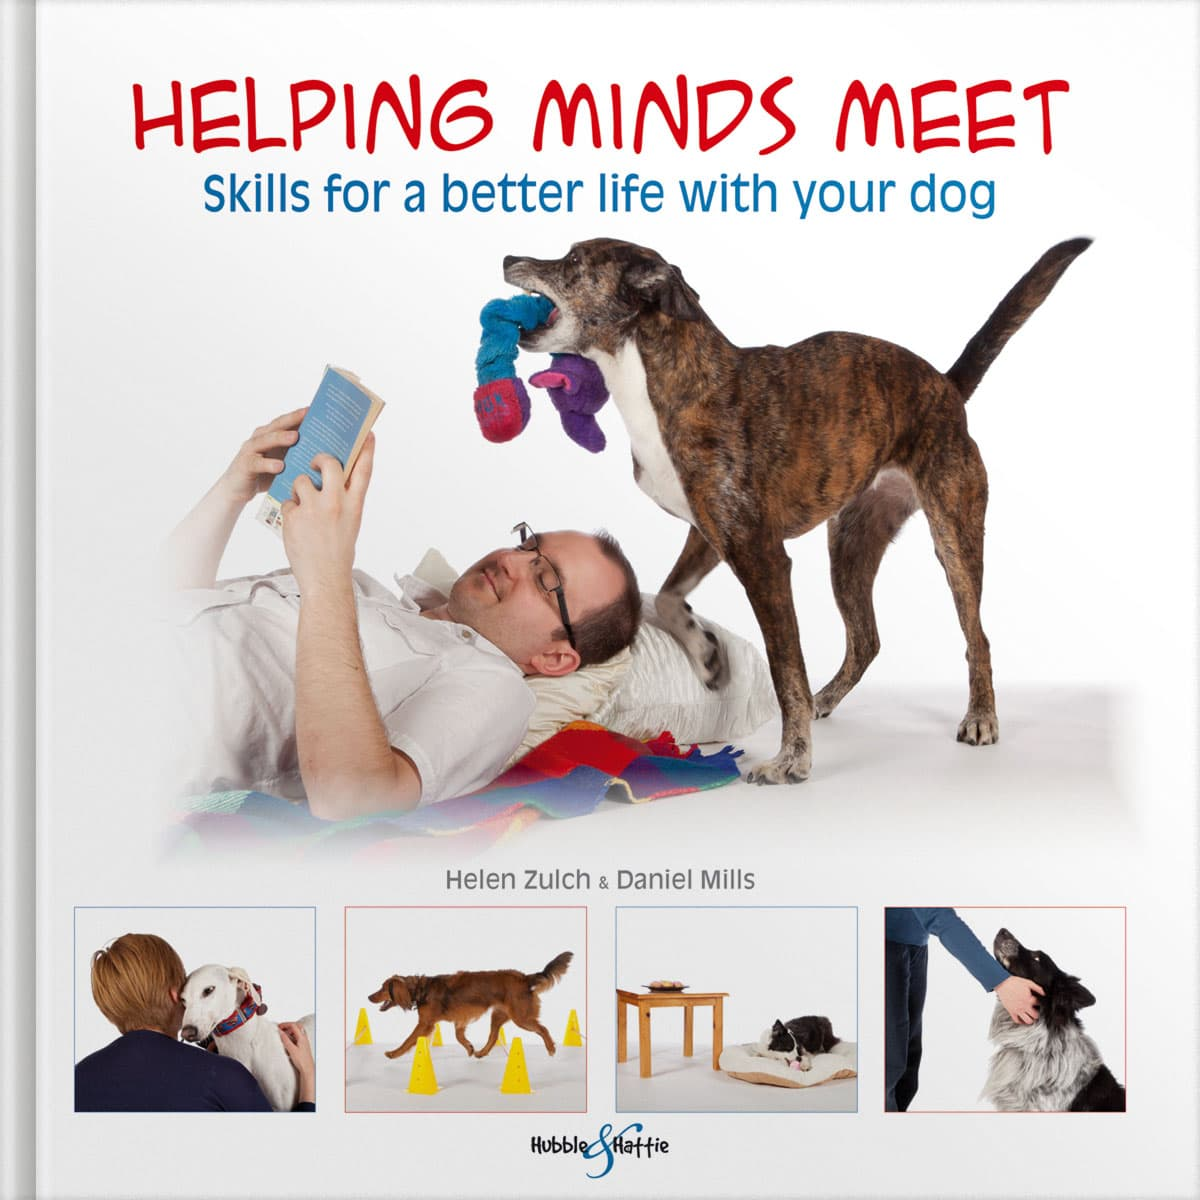 Helping minds meet – Skills for a better life with your dog